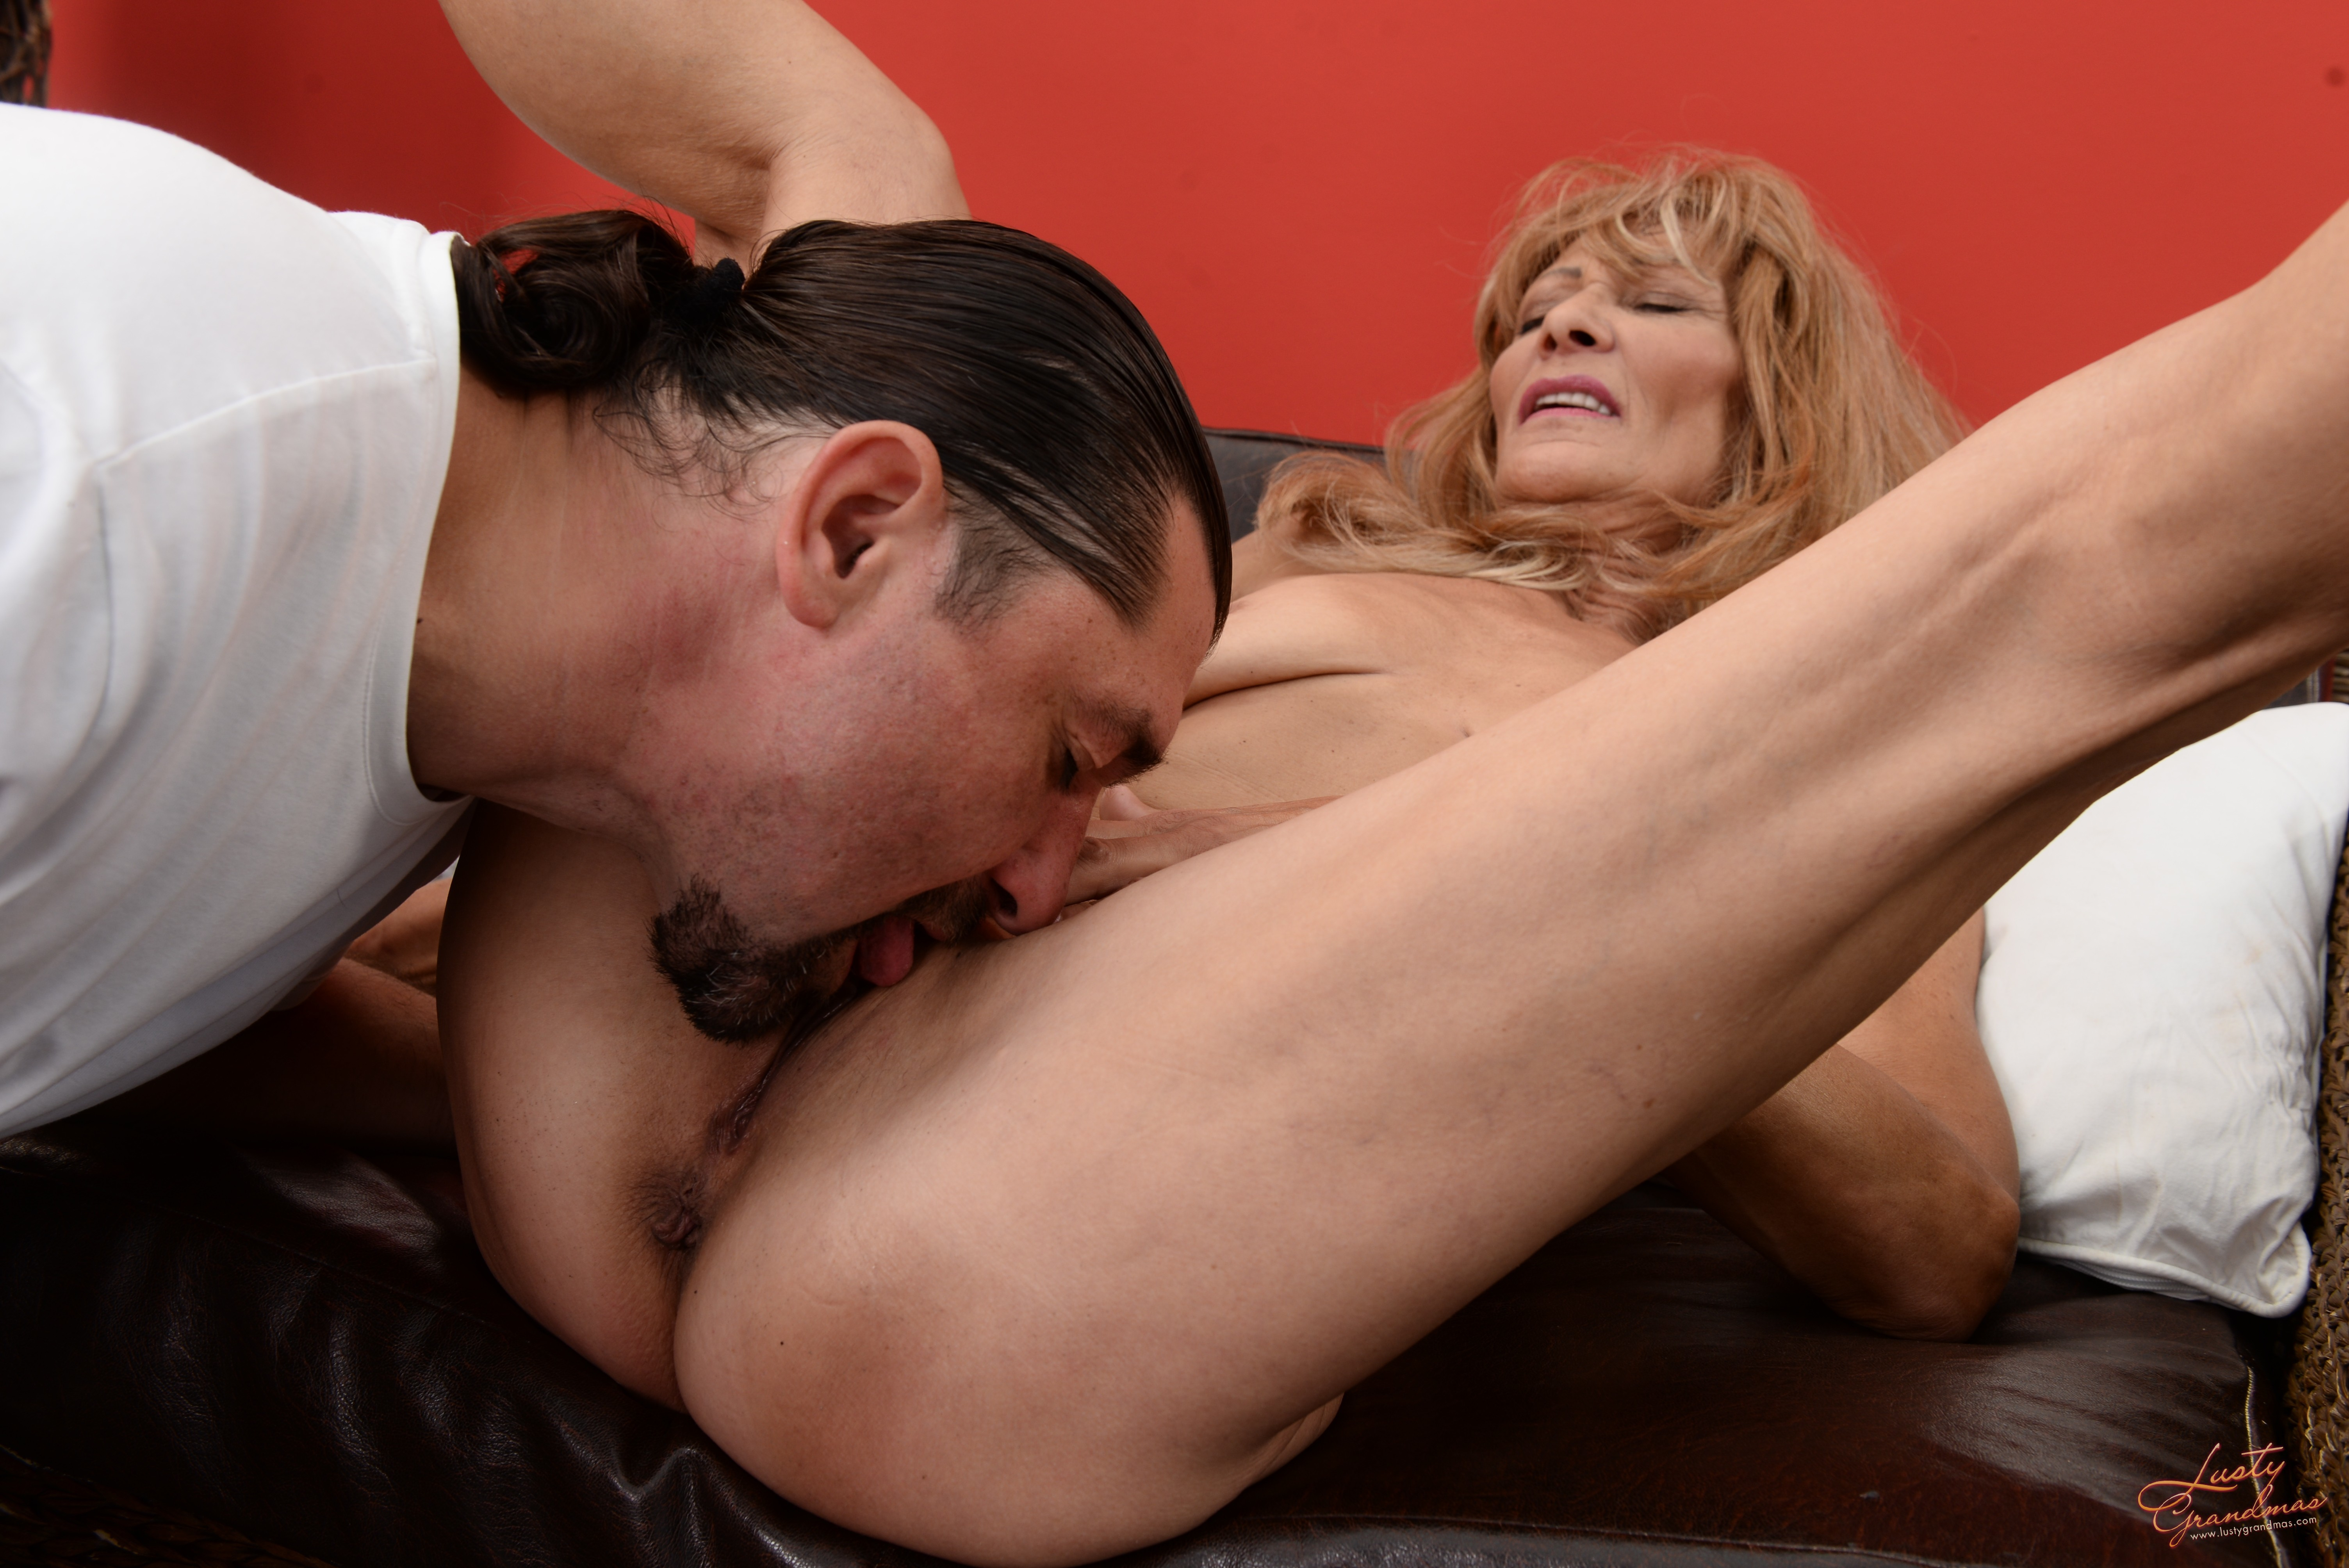 mans-licks-cumout-of-womans-pussy